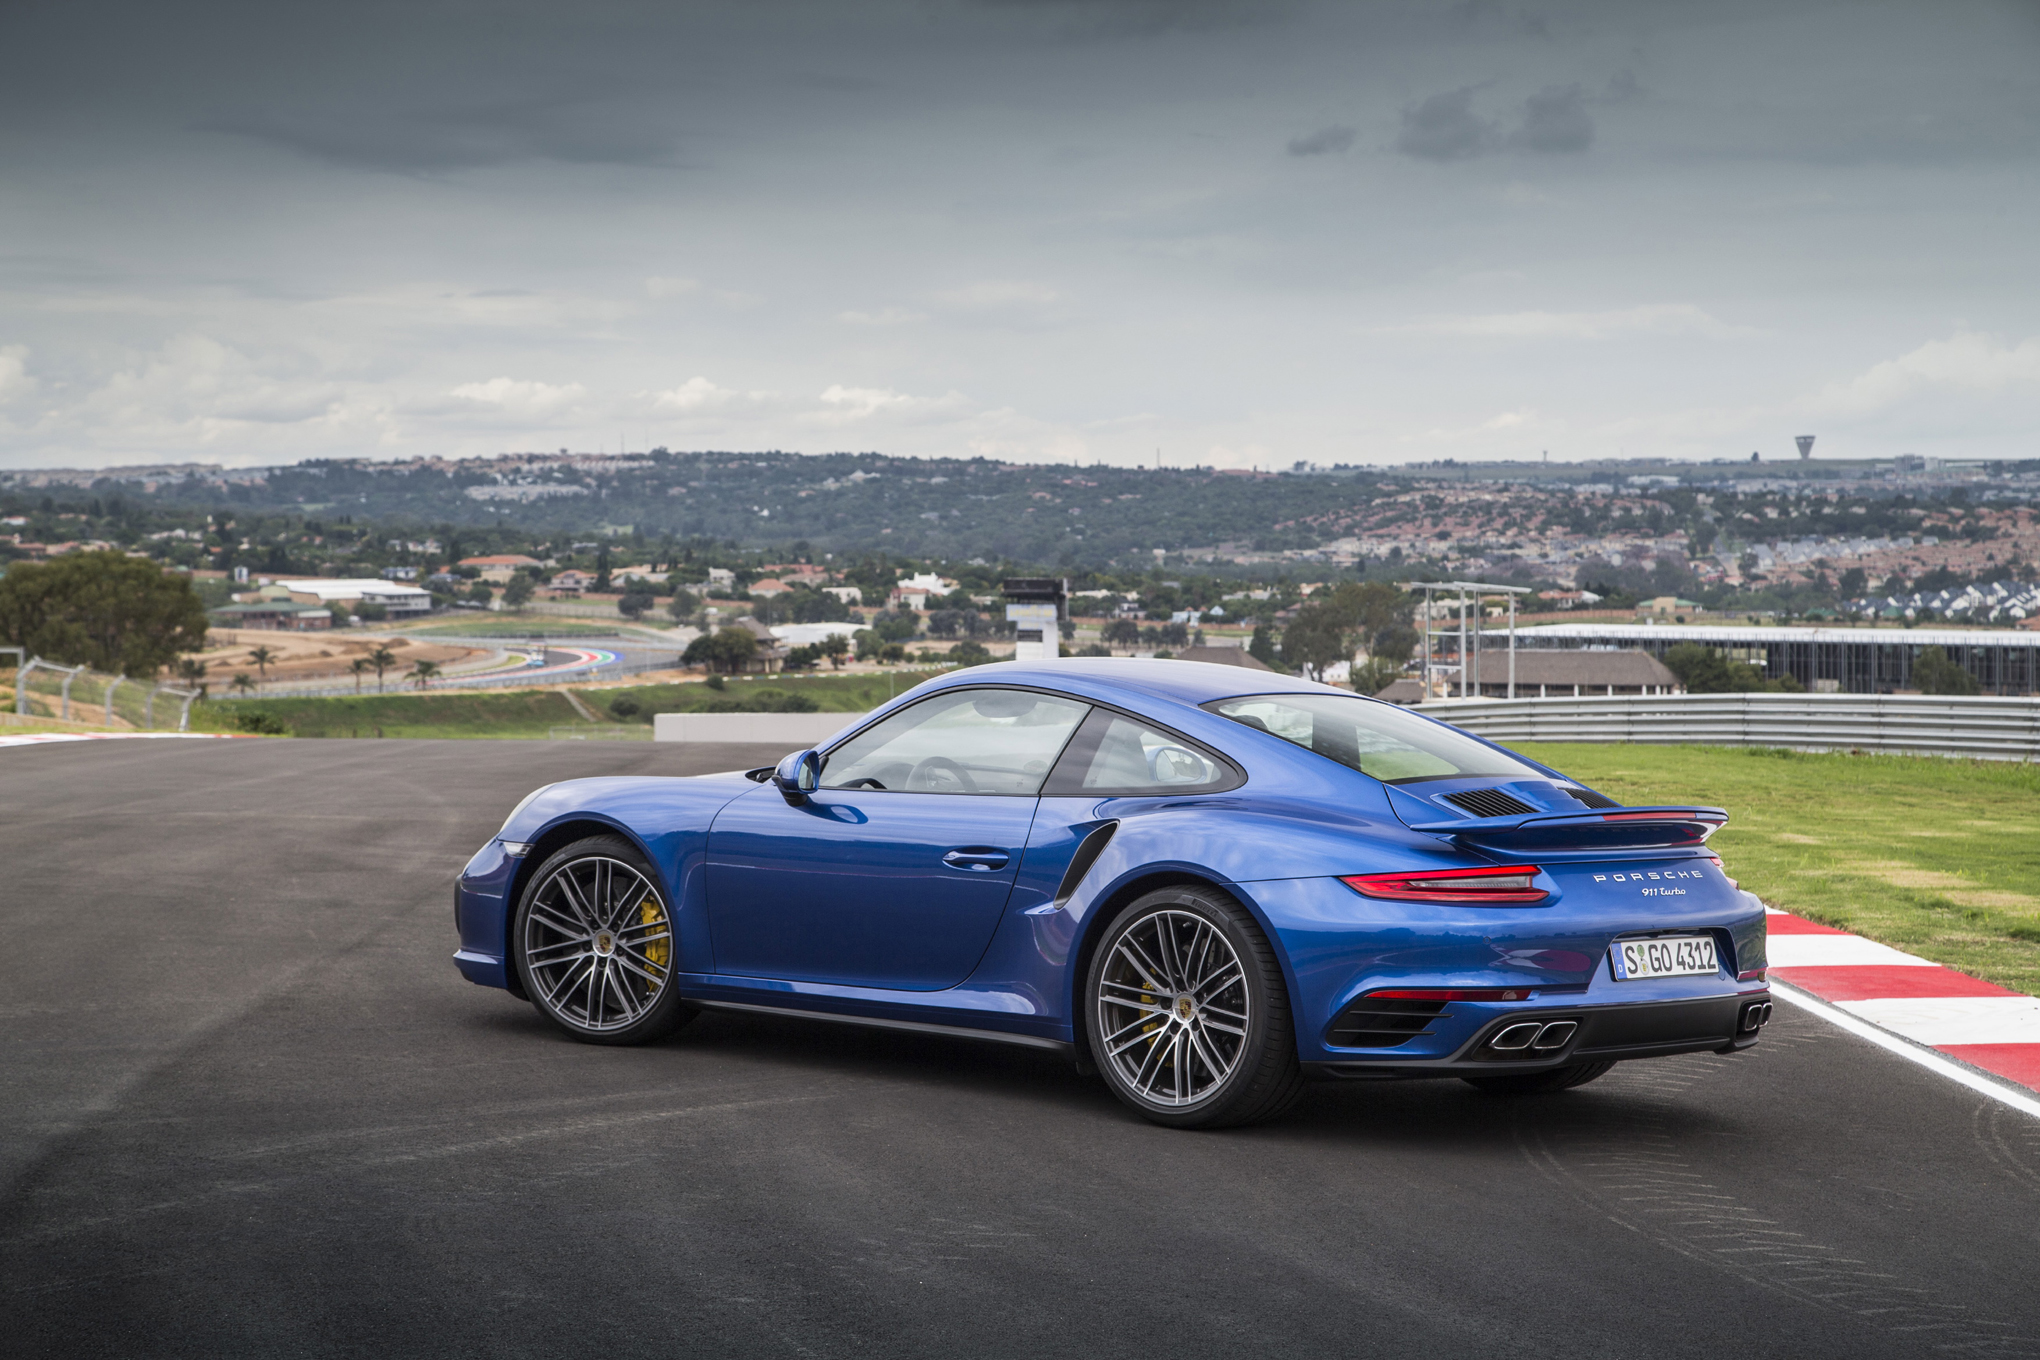 2017 Porsche 911 Turbo Aerokit photo - 1